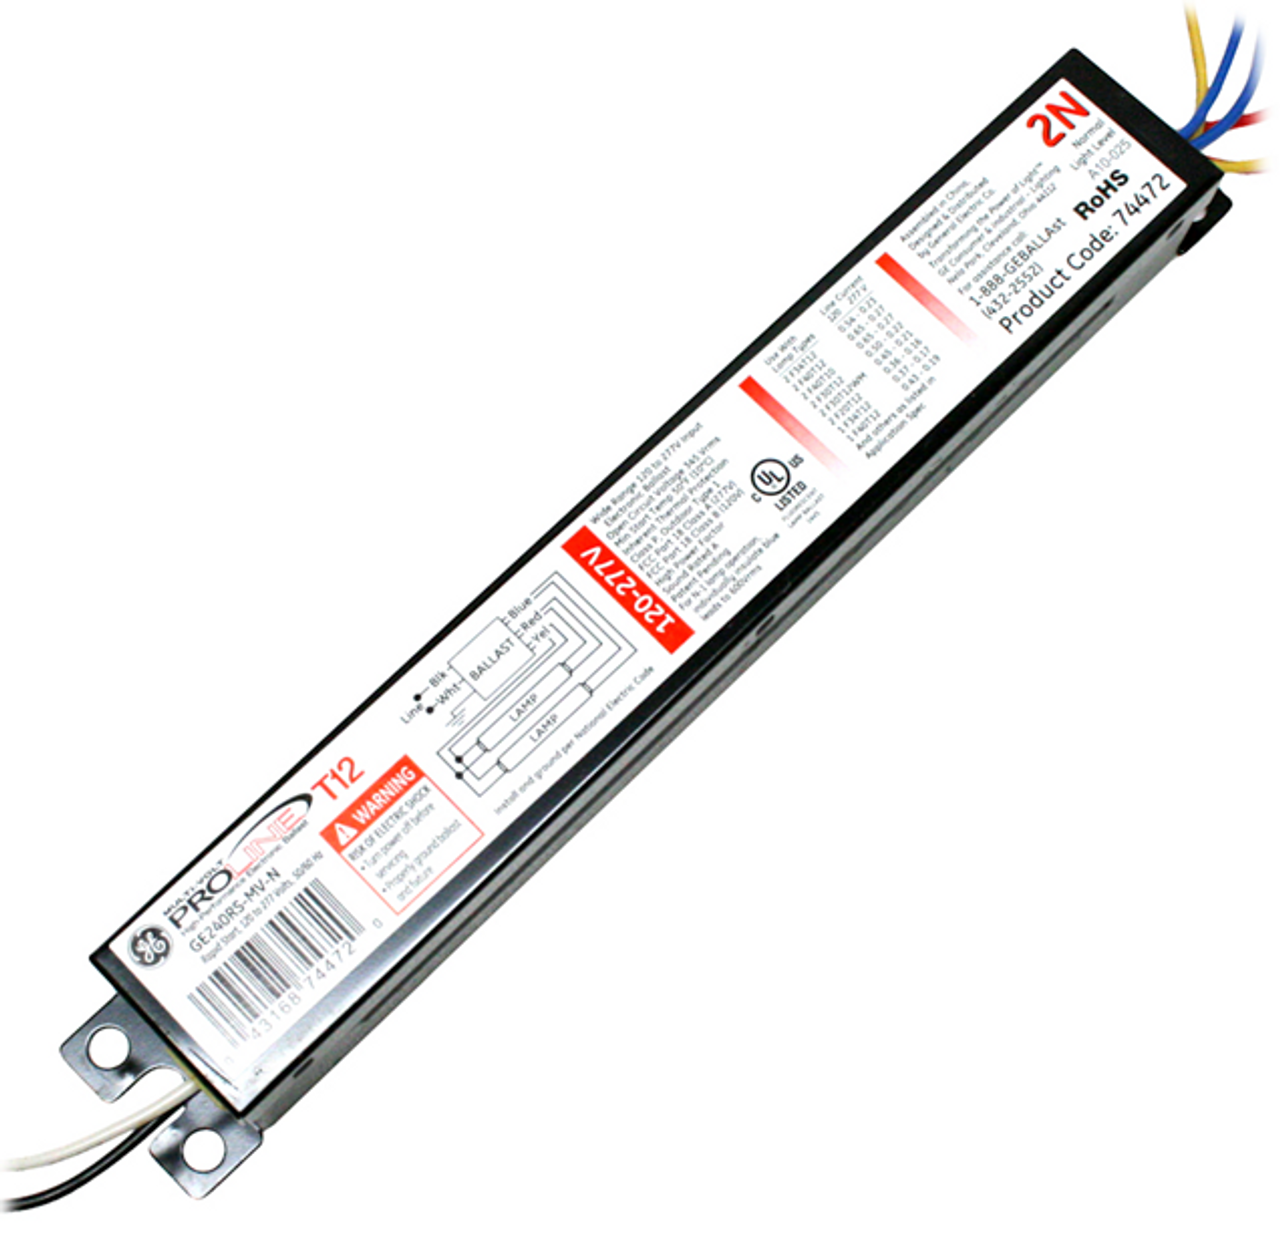 GE240-PS-MV-N (74472) GE Multi-Volt ProLine™ Electronic Ballast on t8 light electric diagram, hpi savage xl diagram, t8 led wiring diagram, t8 or t12 ballast, t8 fluorescent light ballast, t8 fluorescent fixture wiring, t8 light fixture wiring diagram, t8 step dimming ballast, led connection diagram, t8 tube wiring diagram, t8 instant start ballast, m4 carbine parts diagram, t5 wiring diagram, t8 fluorescent lamps wiring in series, amp max 24 40 parts diagram, three-phase generator diagram,